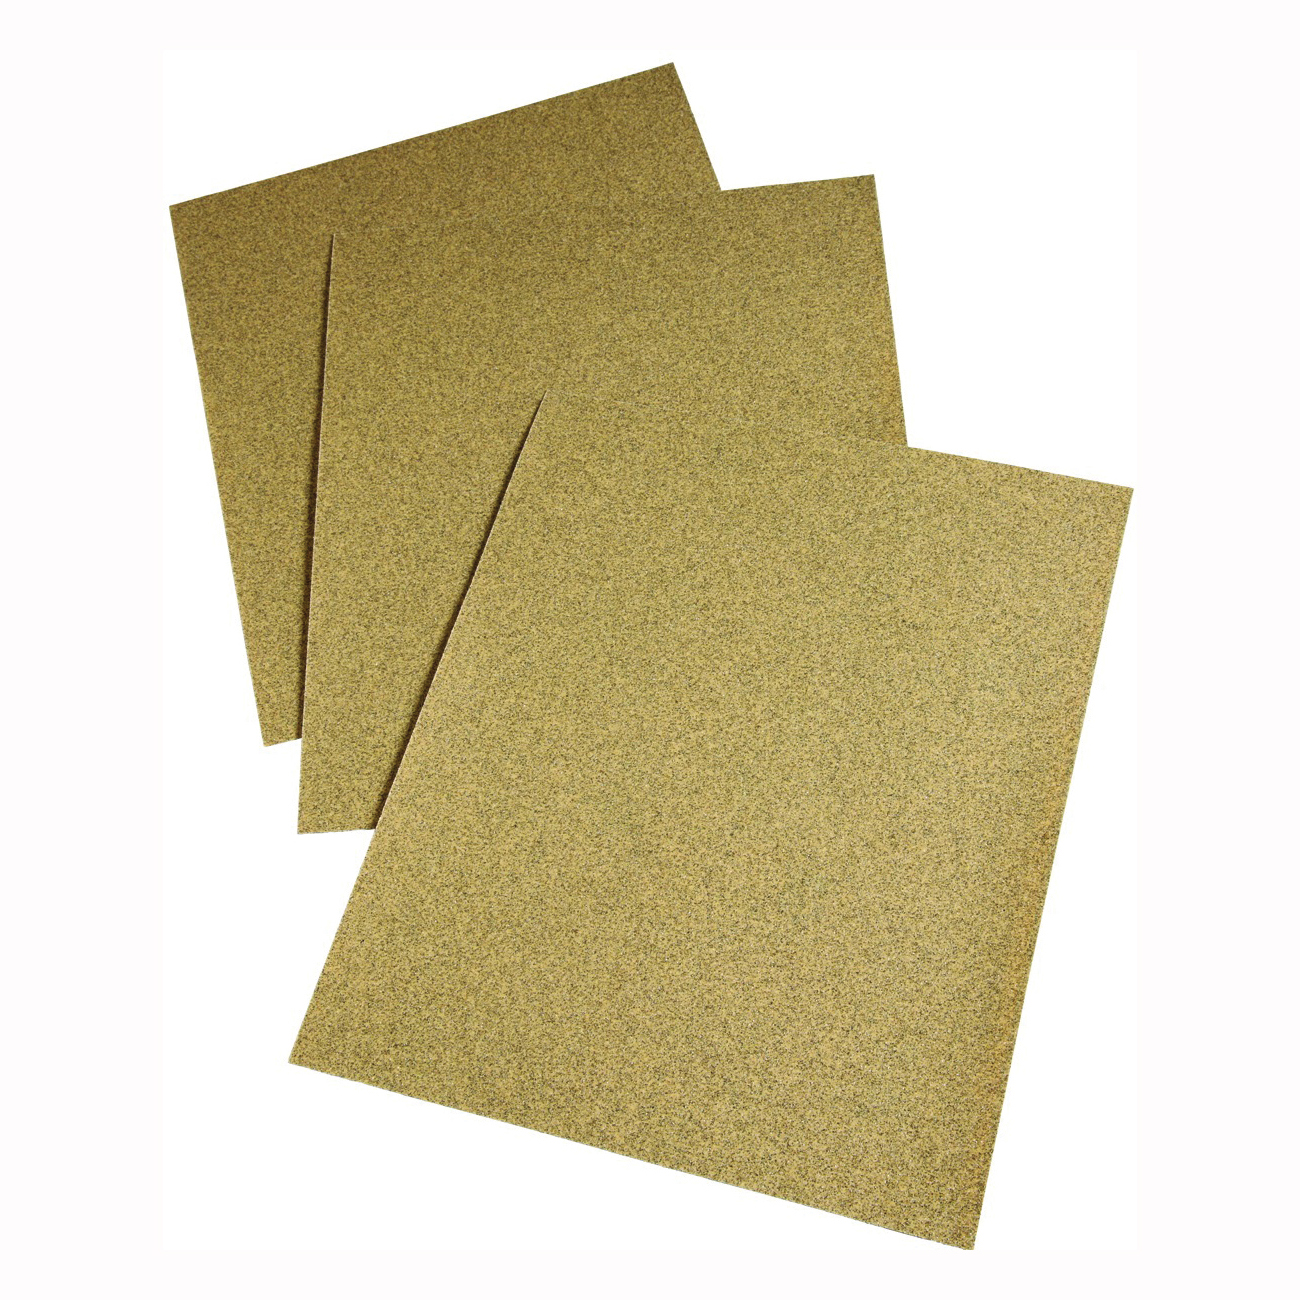 Picture of 3M 02114 Sanding Sheet, 11 in L, 9 in W, Medium, 100 Grit, Aluminum Oxide Abrasive, Paper Backing